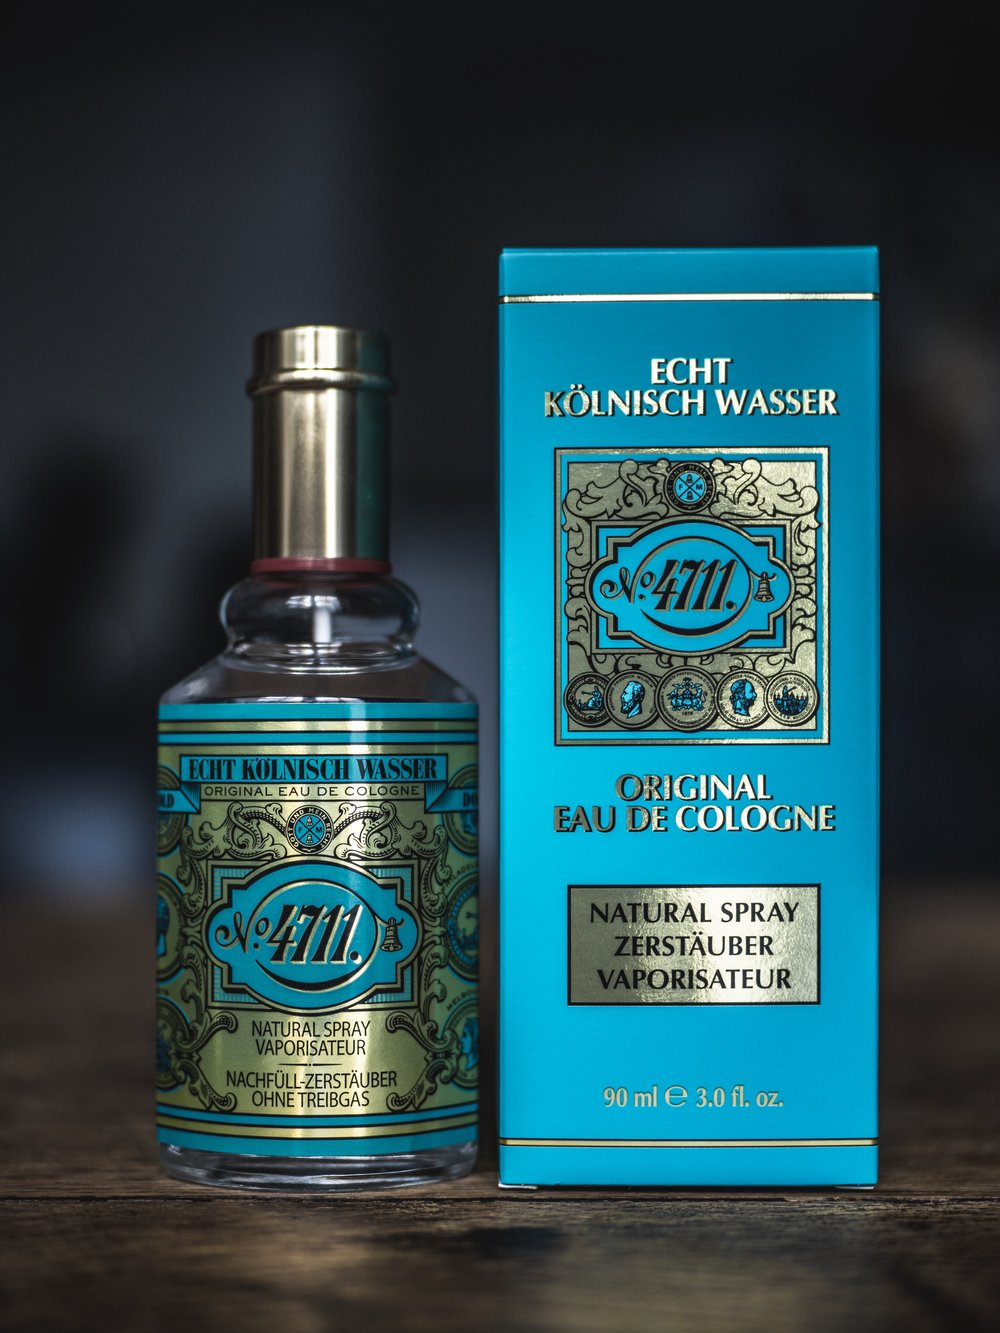 4711 Original Eau de Cologne Fragrance Review